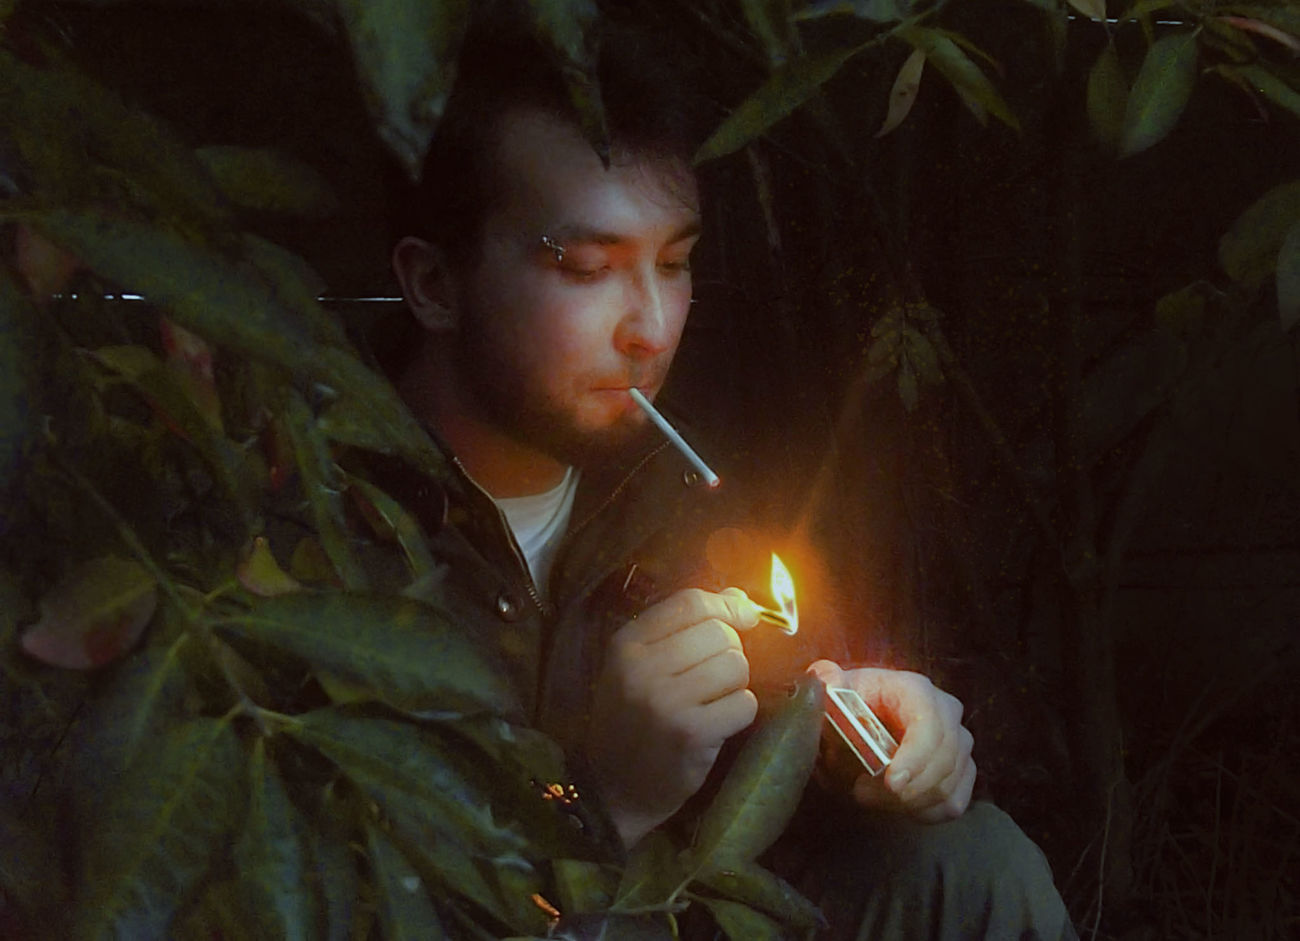 My camera can't doing photos in darkness very well, but I really like atmosphere in this picture. 🙈 Bad Boy  Badboy Boy Burning Casual Clothing Cigarette  Fire - Natural Phenomenon Firework - Man Made Object Flag Flame Flame Light Holding Leaves Lifestyles Light And Shadow Man Nature Outdoors Person Pircing Sitting Outside Smoke Smoker Smoker Face Young Adult